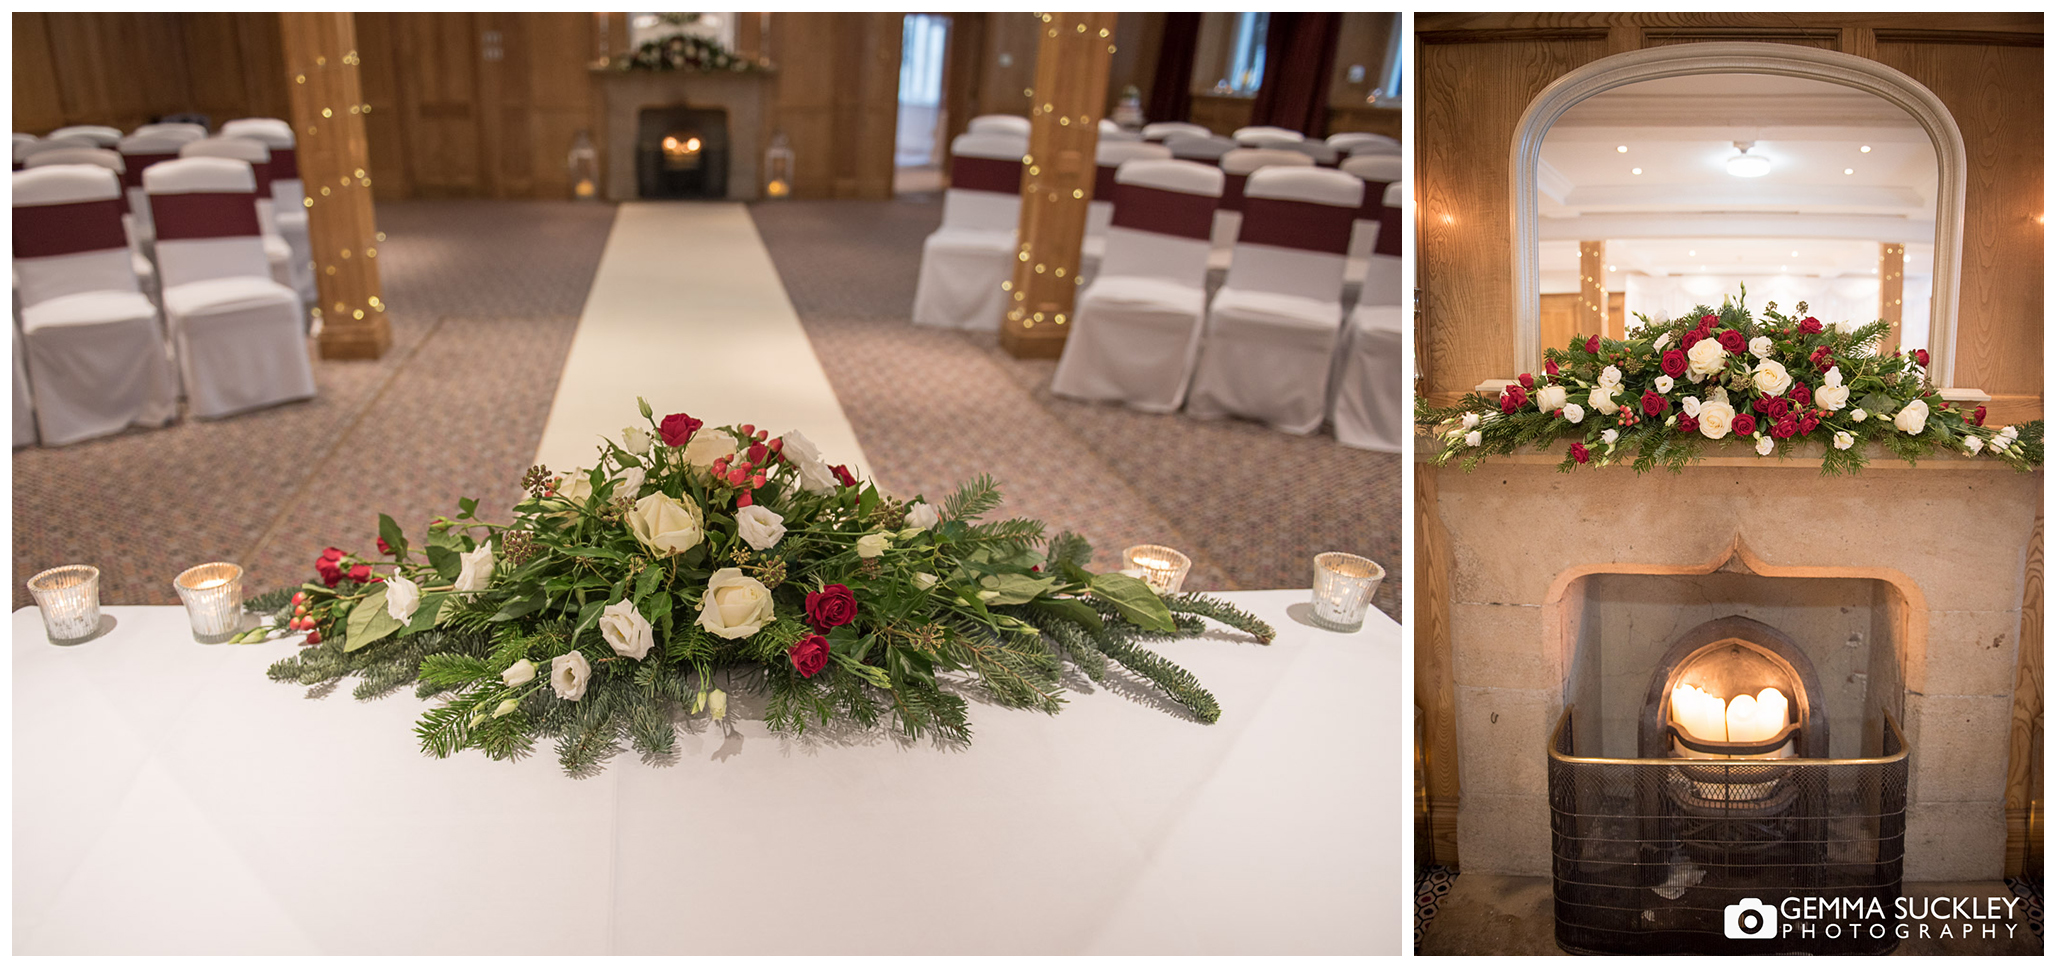 The Devonshire Arms, Bolton Abbey wedding ceremony room